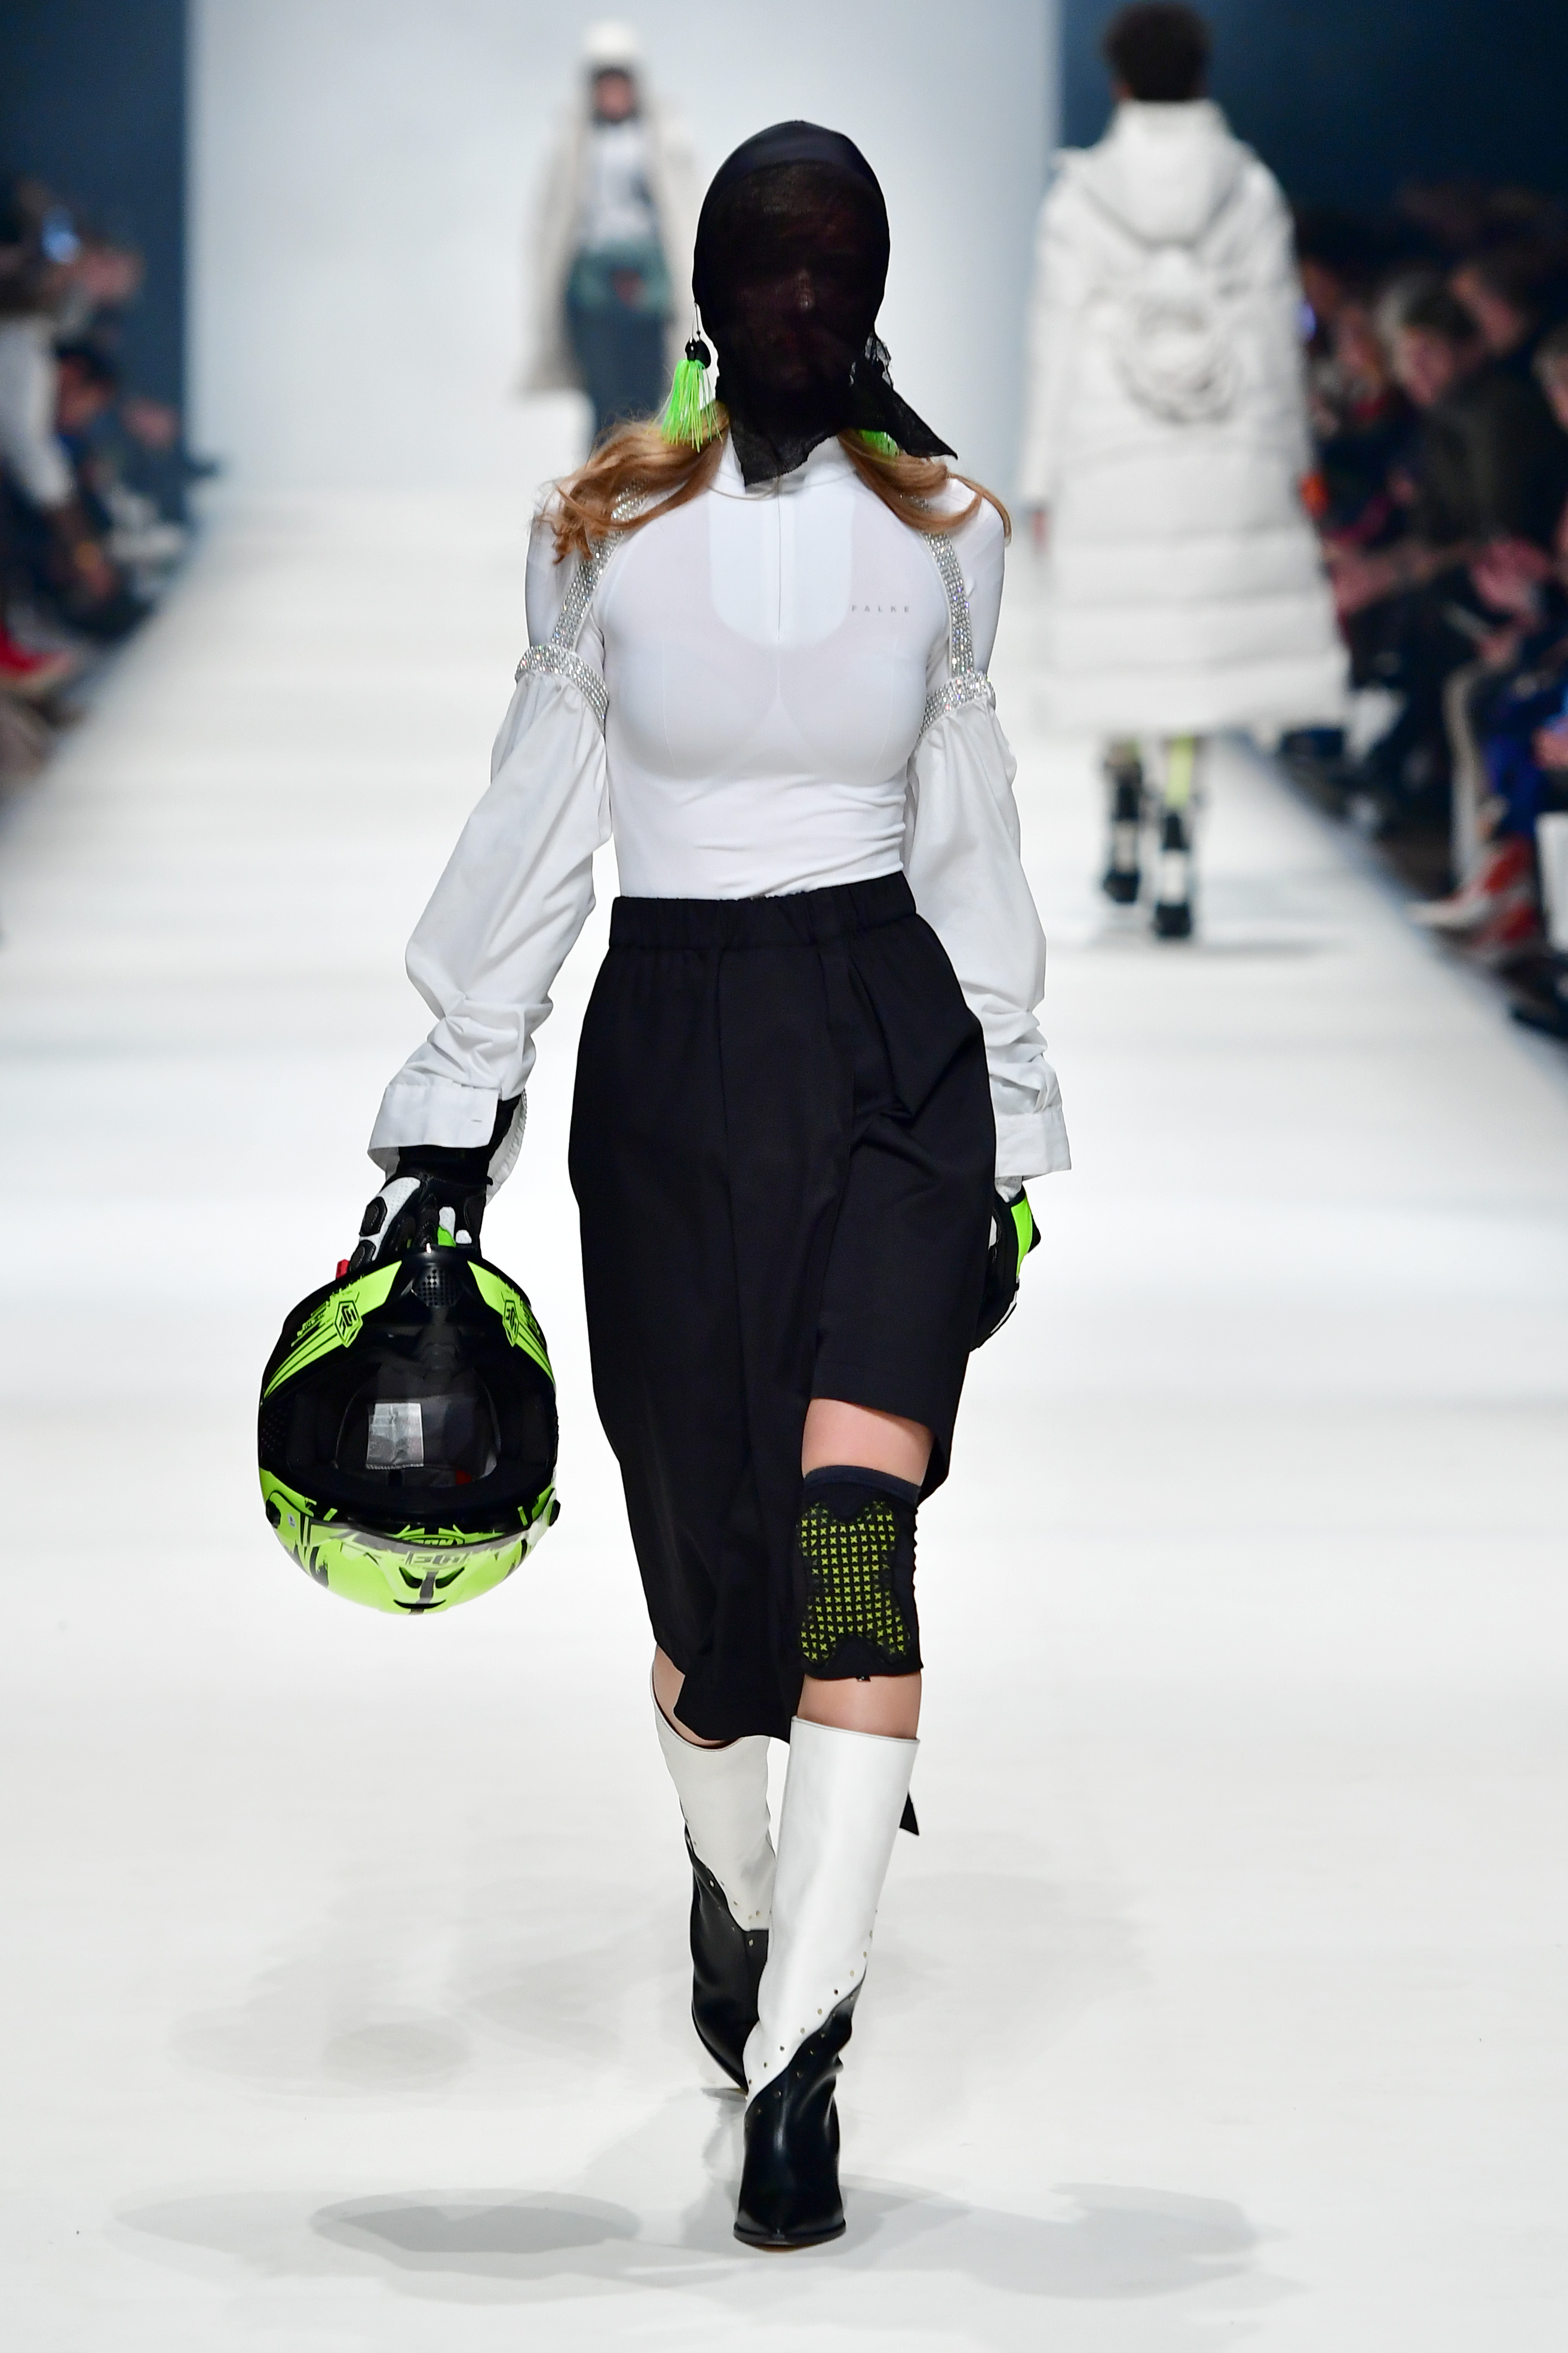 BERLIN, GERMANY - JANUARY 14: A model wearing a top by Falke, sleeves by Lil' Lapel, skirt by Natascha von Hirschhausen, hood & fish hooks by Stylist's own, helmet & gloves by Biker-Zone and shoes by Alinaschuerfeld walks the runway at the Neonyt show during Berlin Fashion Week Autumn/Winter 2020 at Kraftwerk Mitte on January 14, 2020 in Berlin, Germany. (Photo by Alexander Koerner/Getty Images for MBFW)